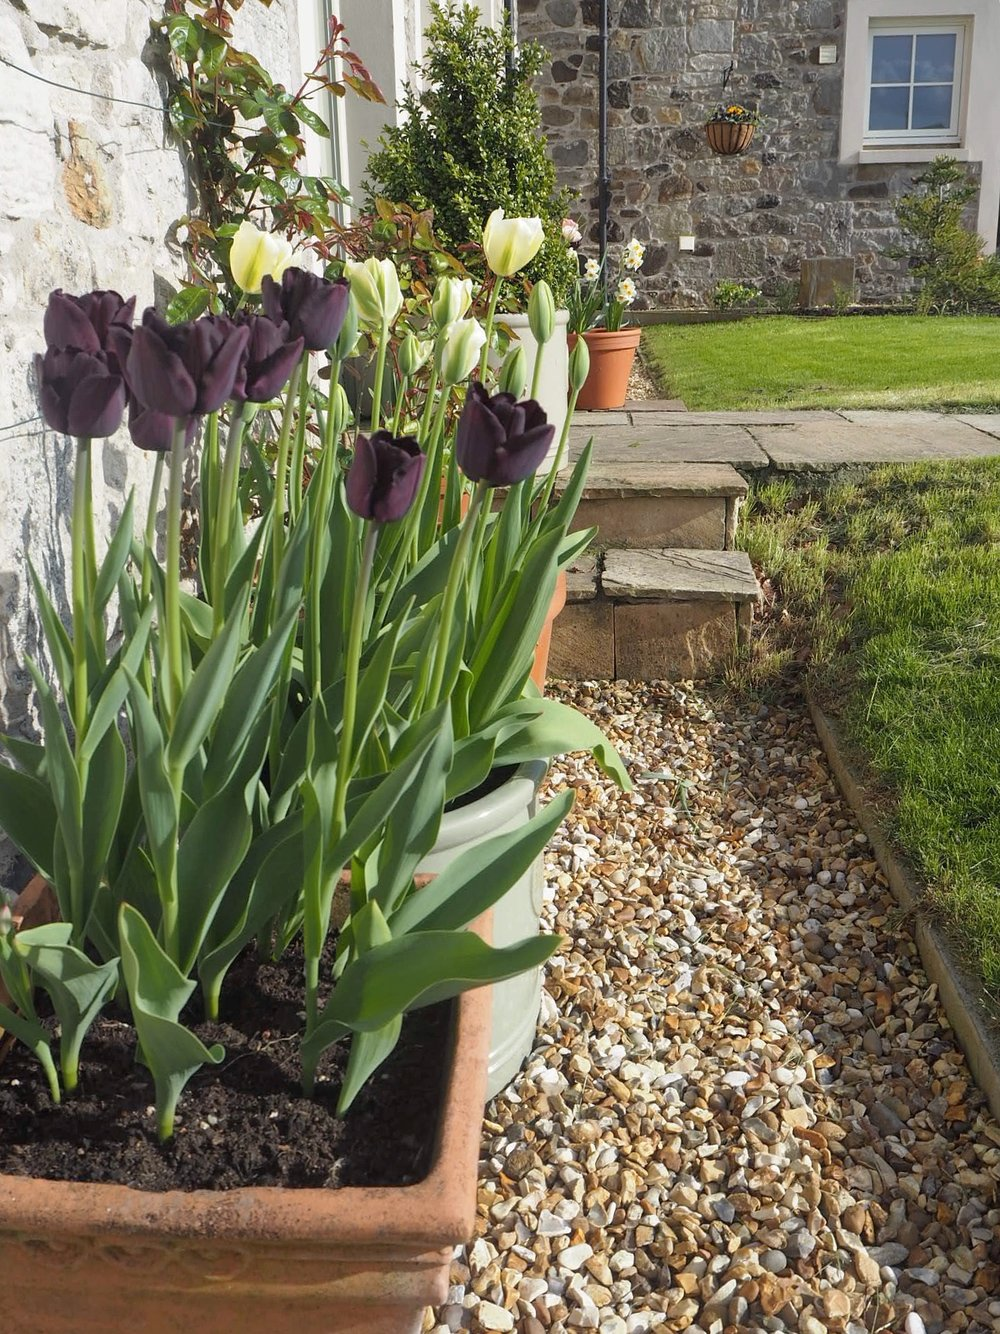 The tulips and narcissus by the front door.